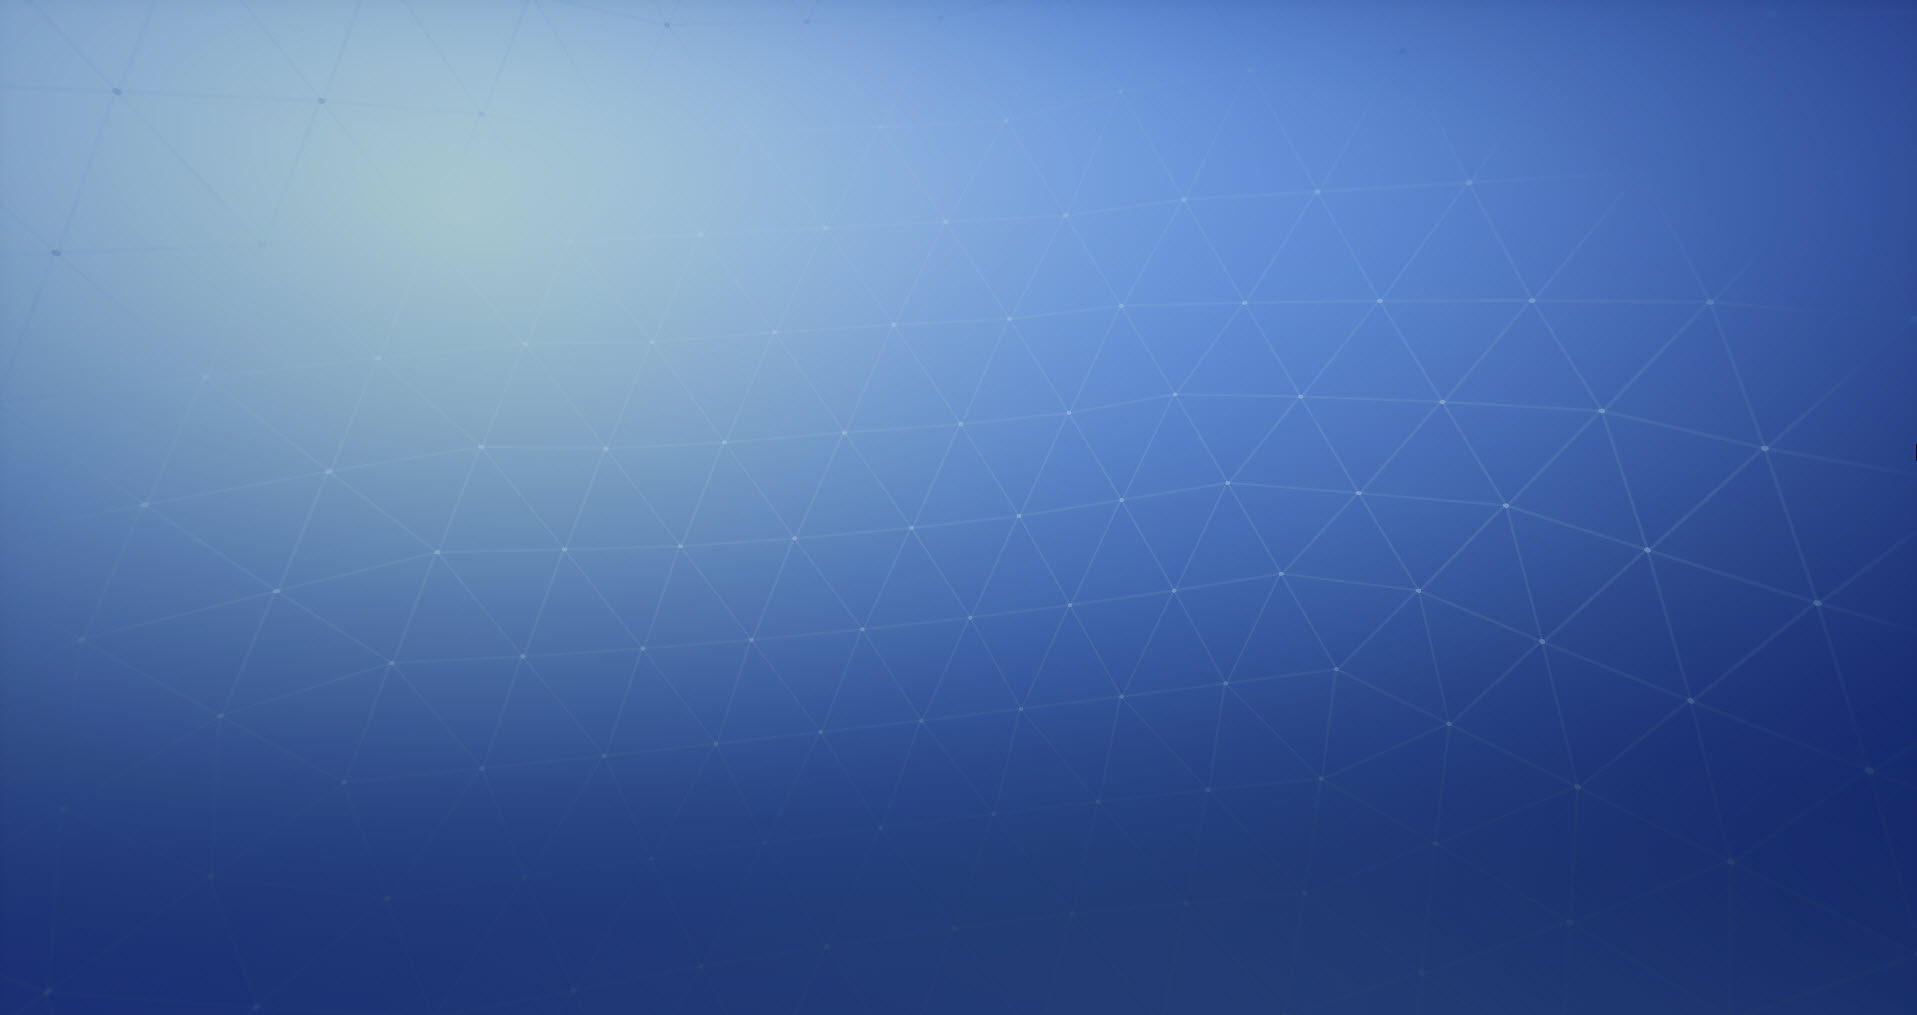 Heres the wide screen background from Fortnite with 1917x1015